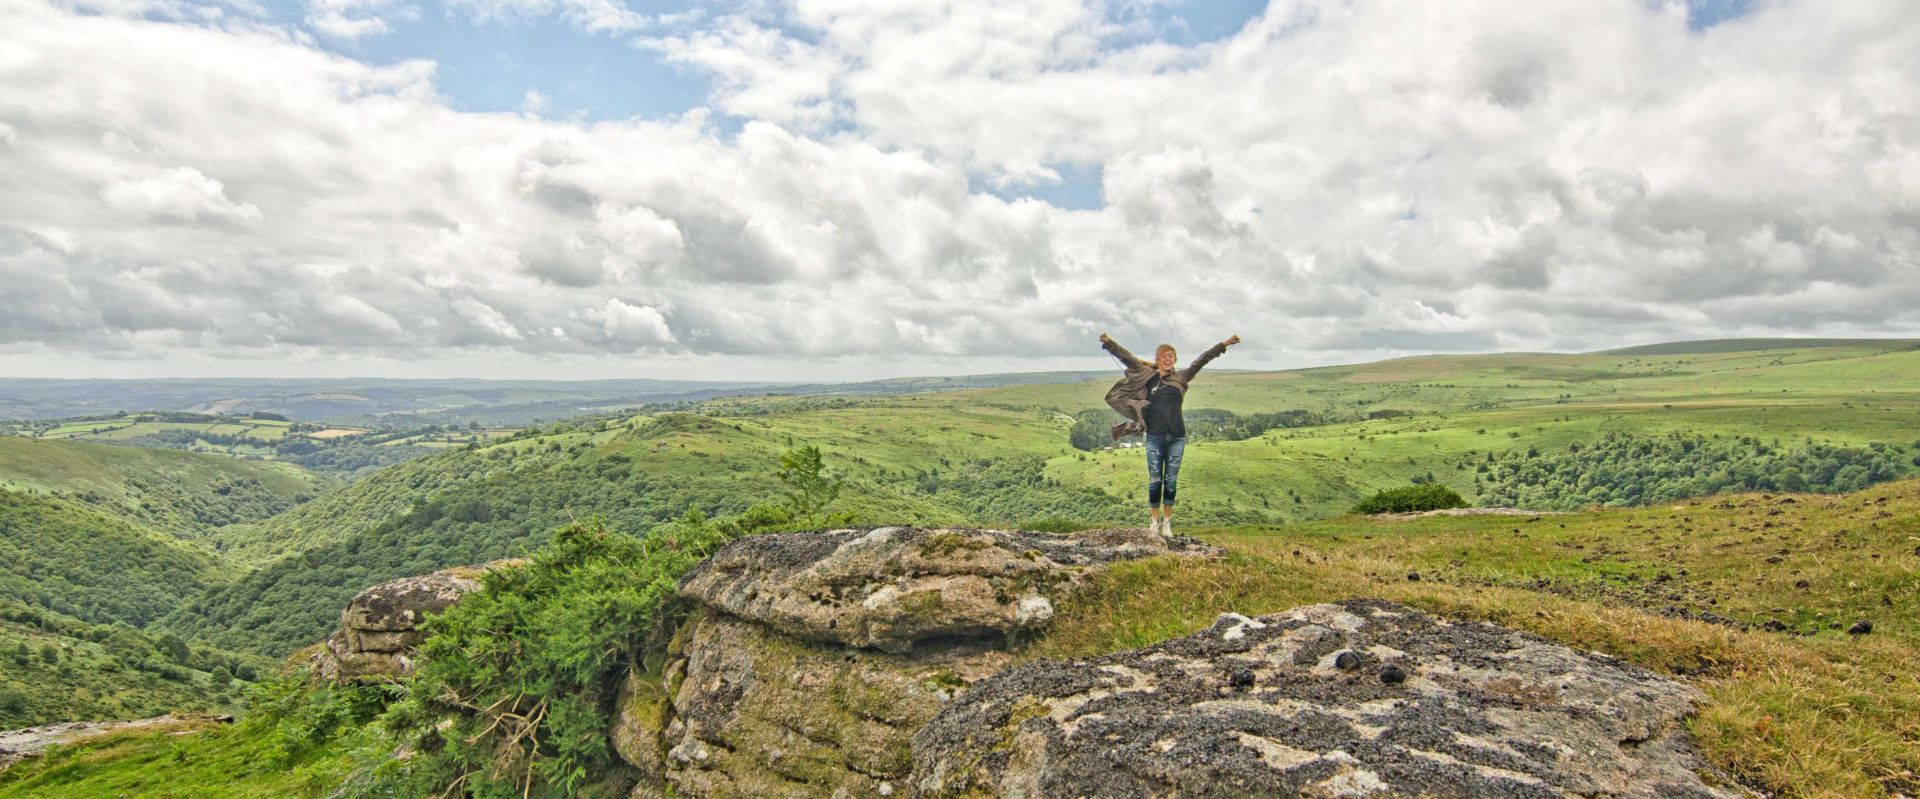 Guest on Sharptor during the Ultimate Dartmoor Experience